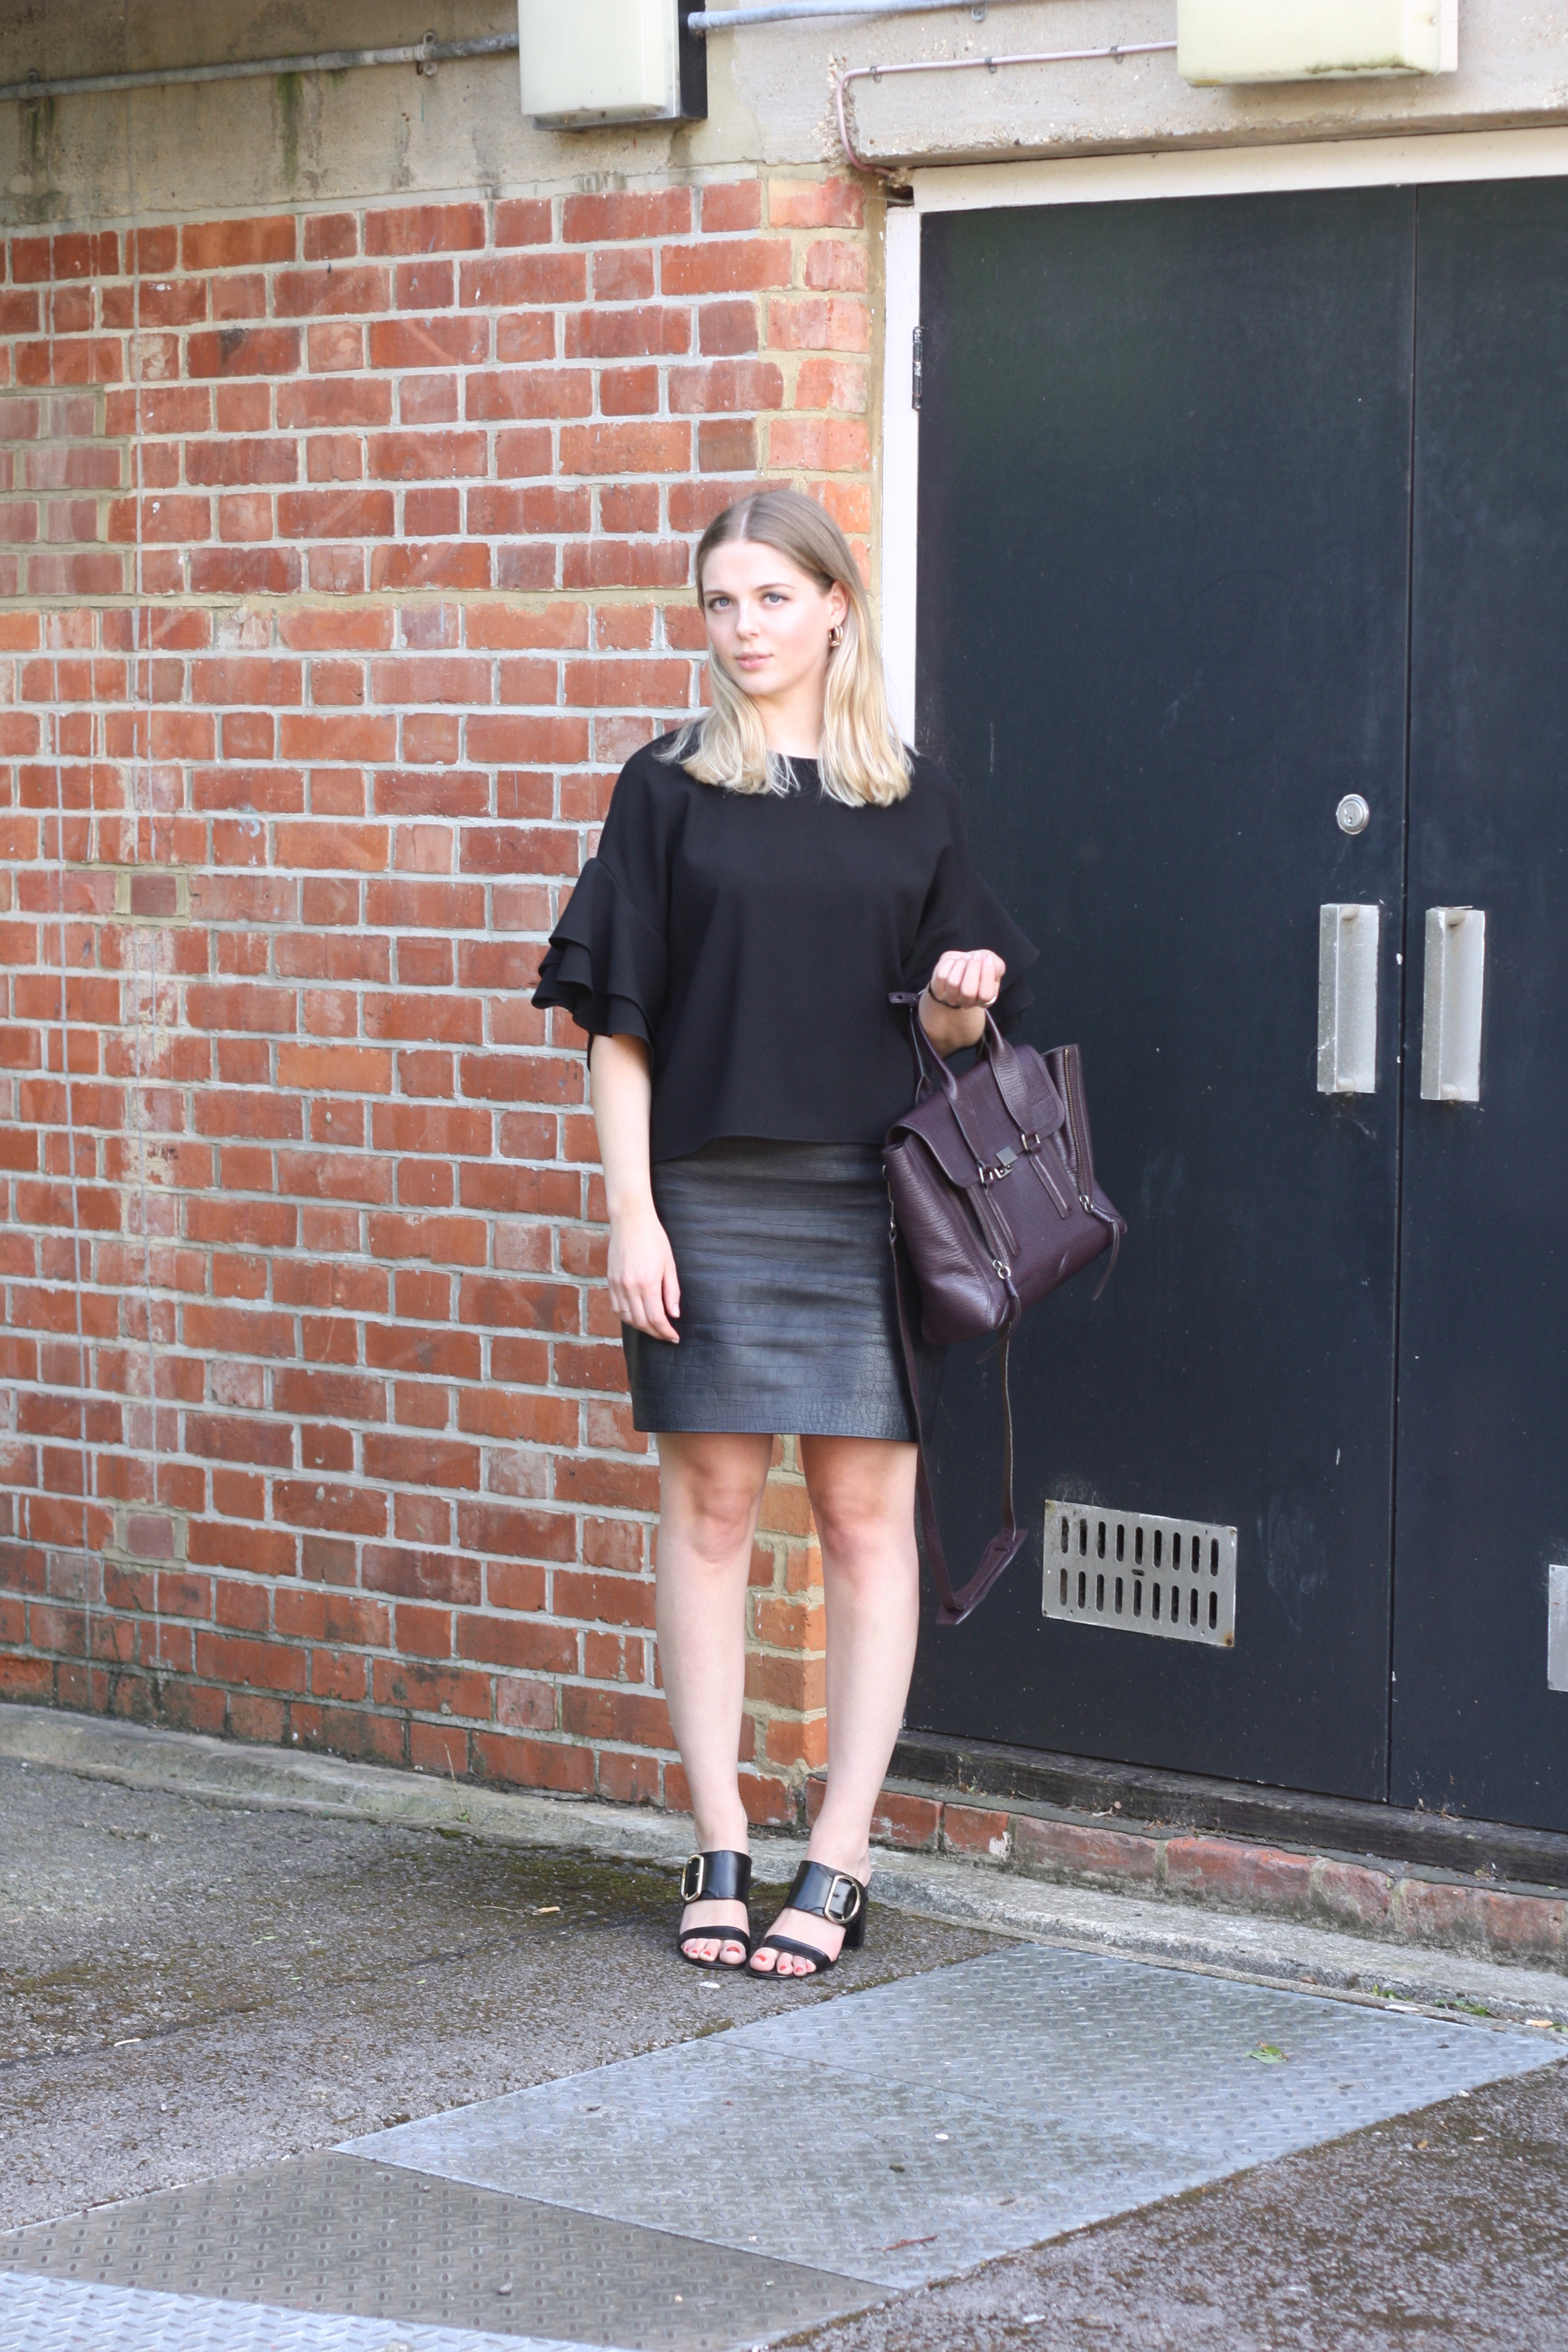 Topshop Boutique black leather skirt, Whistles gold buckle heels and 3.1 Phillip Lim Pashli medium bag